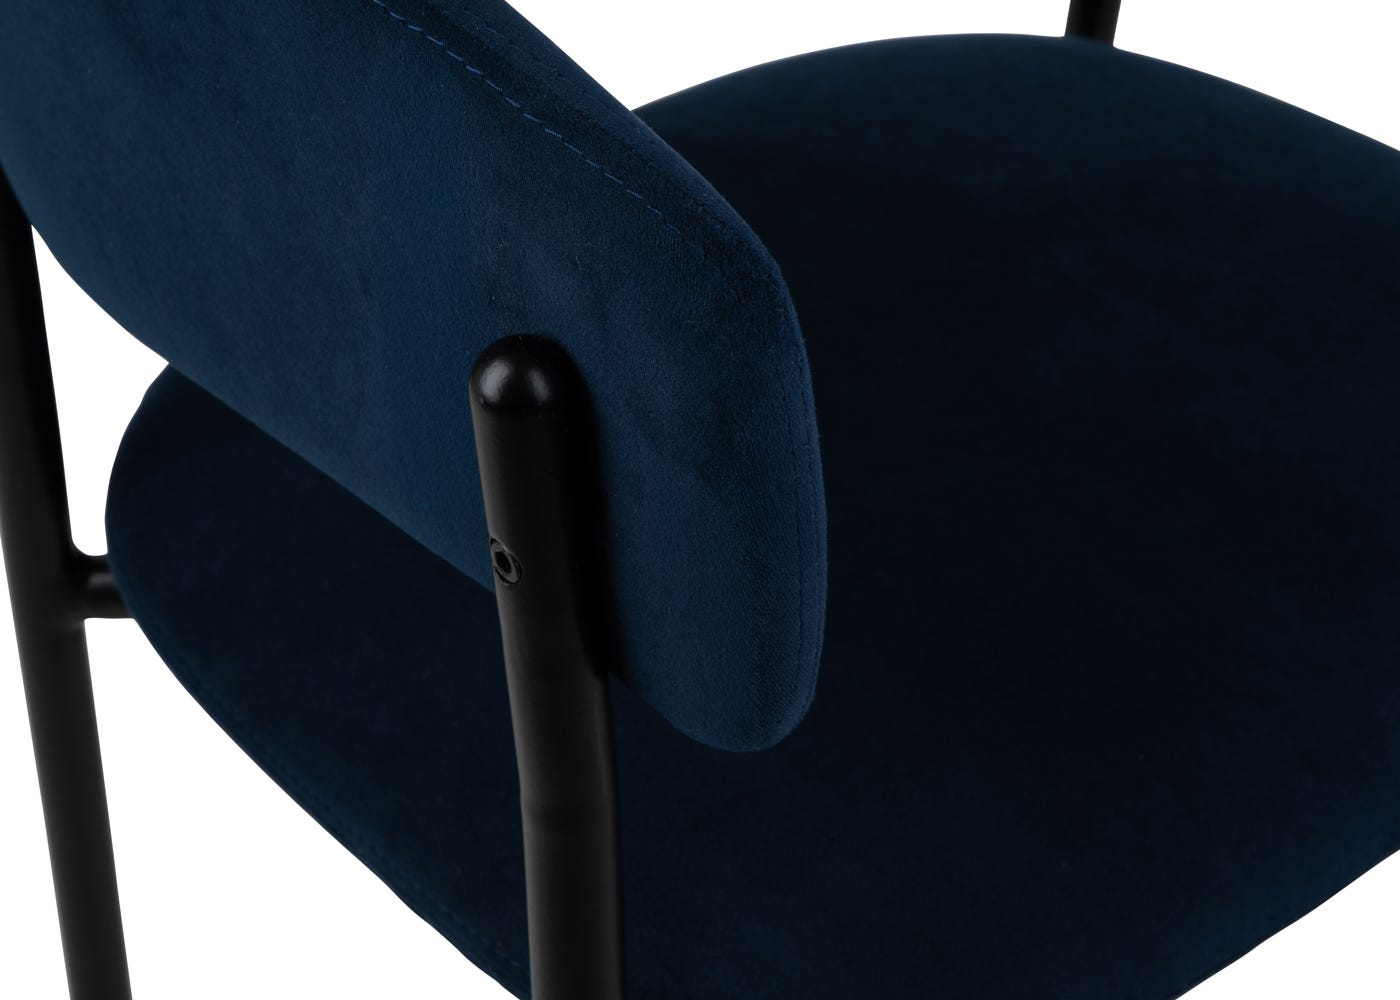 As shown: Foam wrapped seat pad.